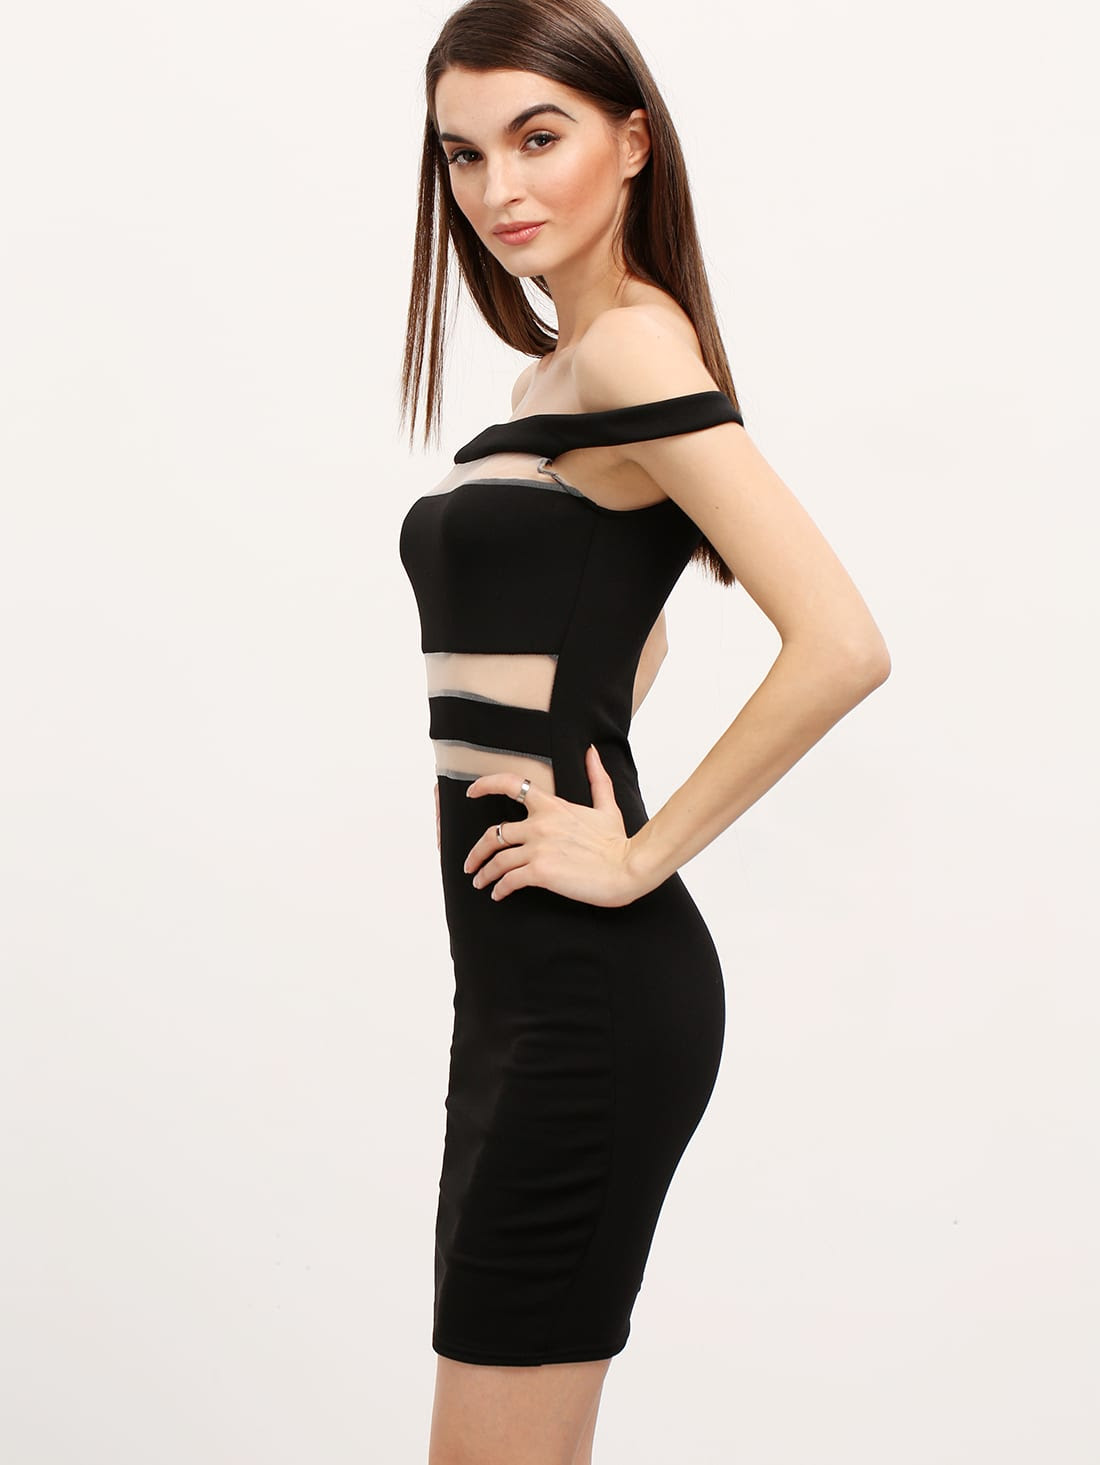 Women bodycon dress for skinny girl up shirts nyc with vans